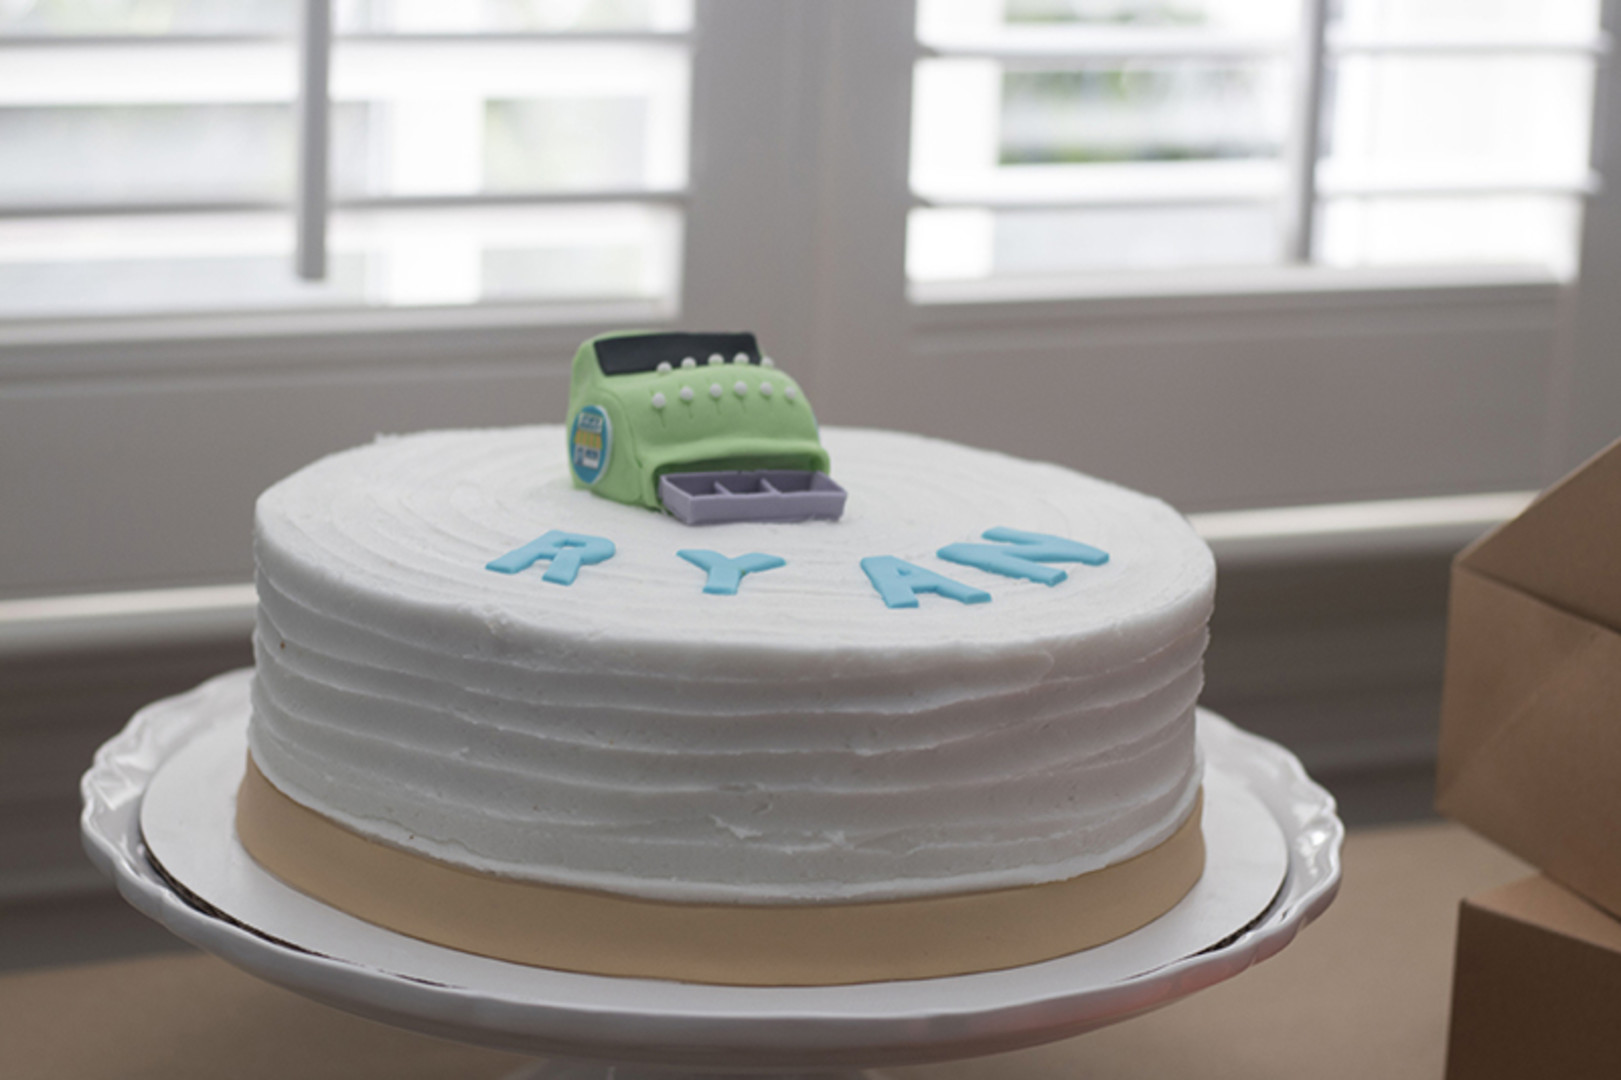 first birthday cake with green cash register on top